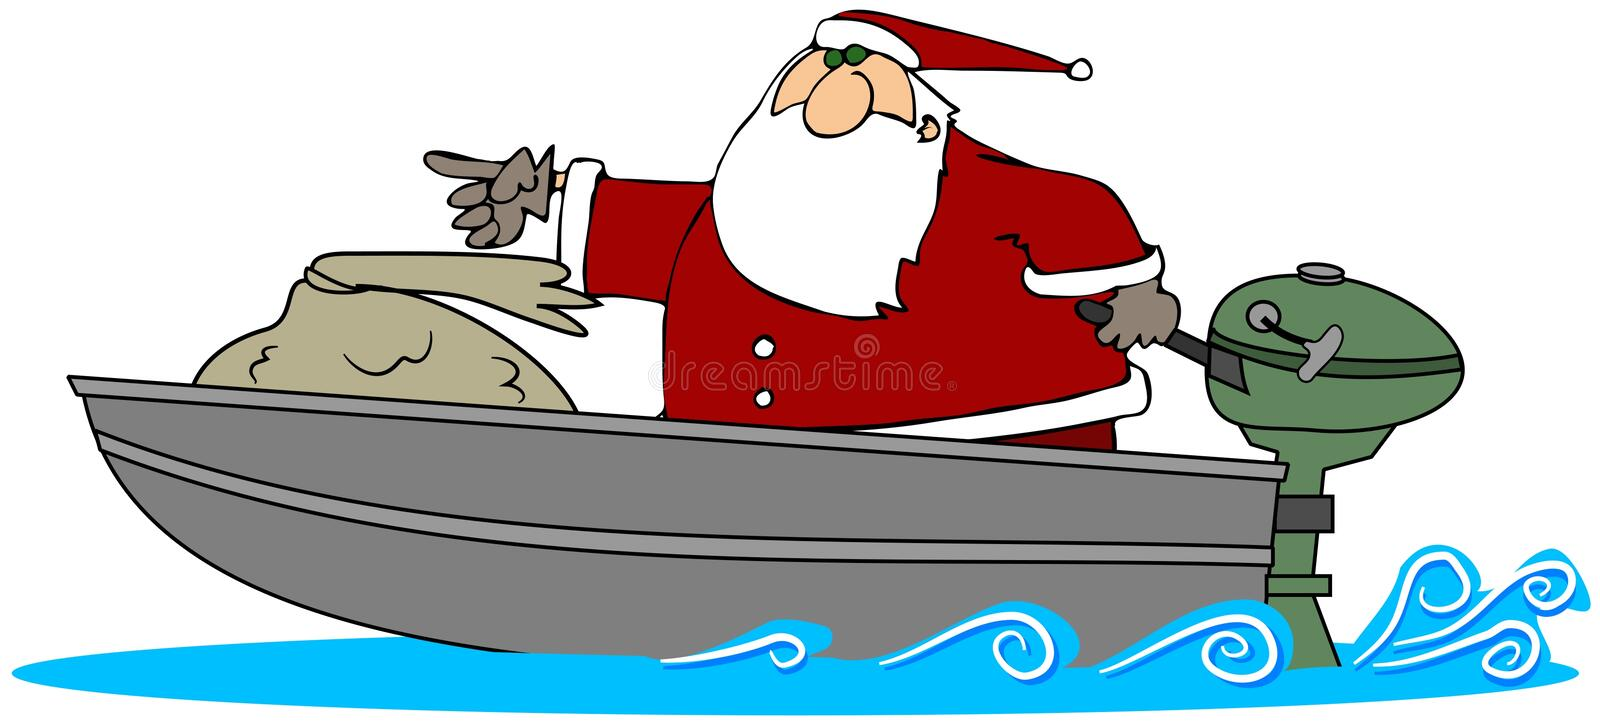 Santa In A Motor Boat. This illustration depicts Santa Claus speeding in a motor boat vector illustration